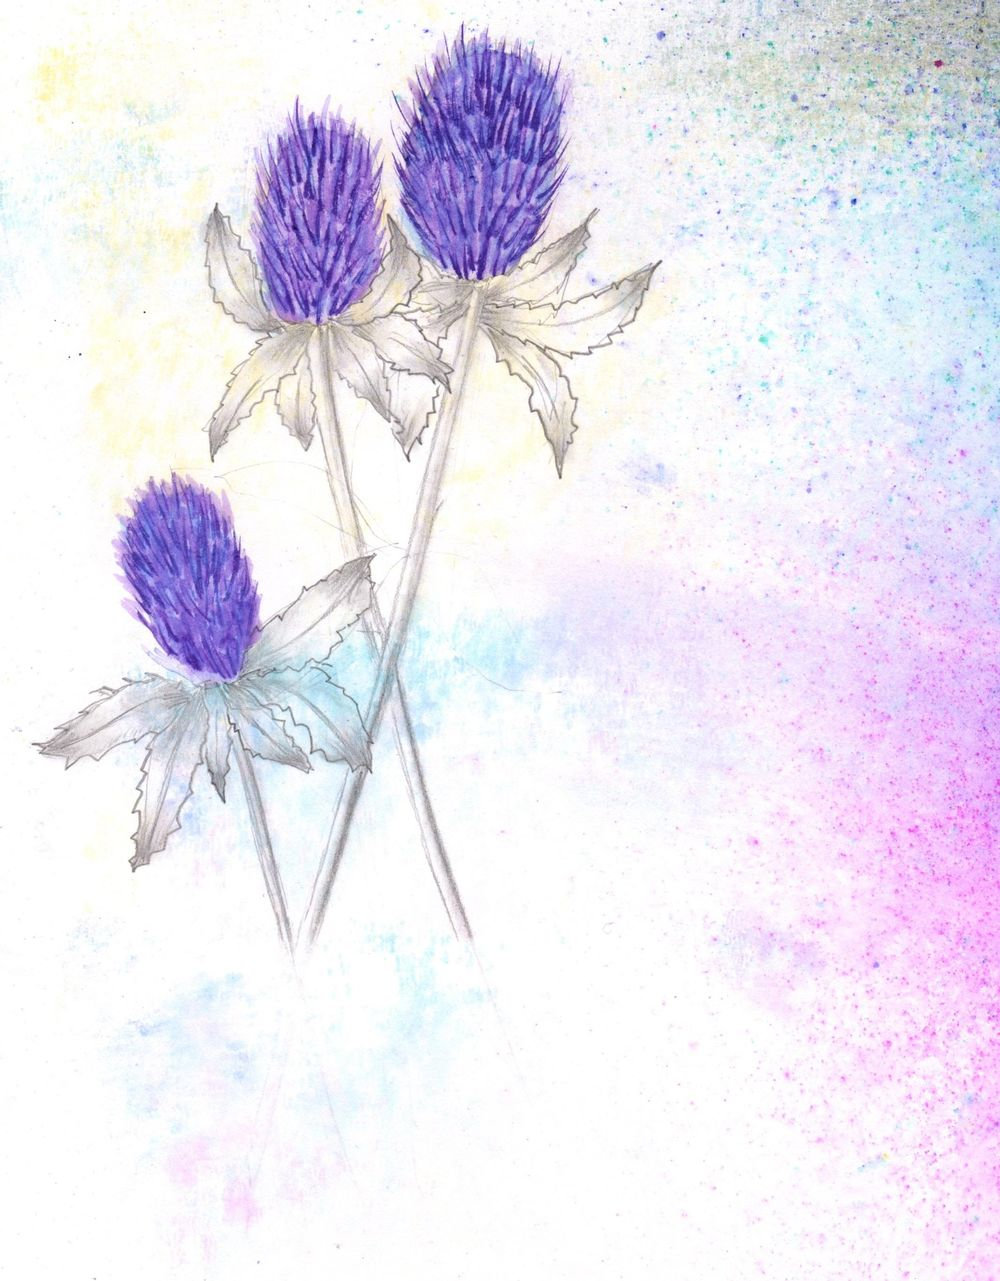 Daisies & Thistles - first intentions - image 2 - student project